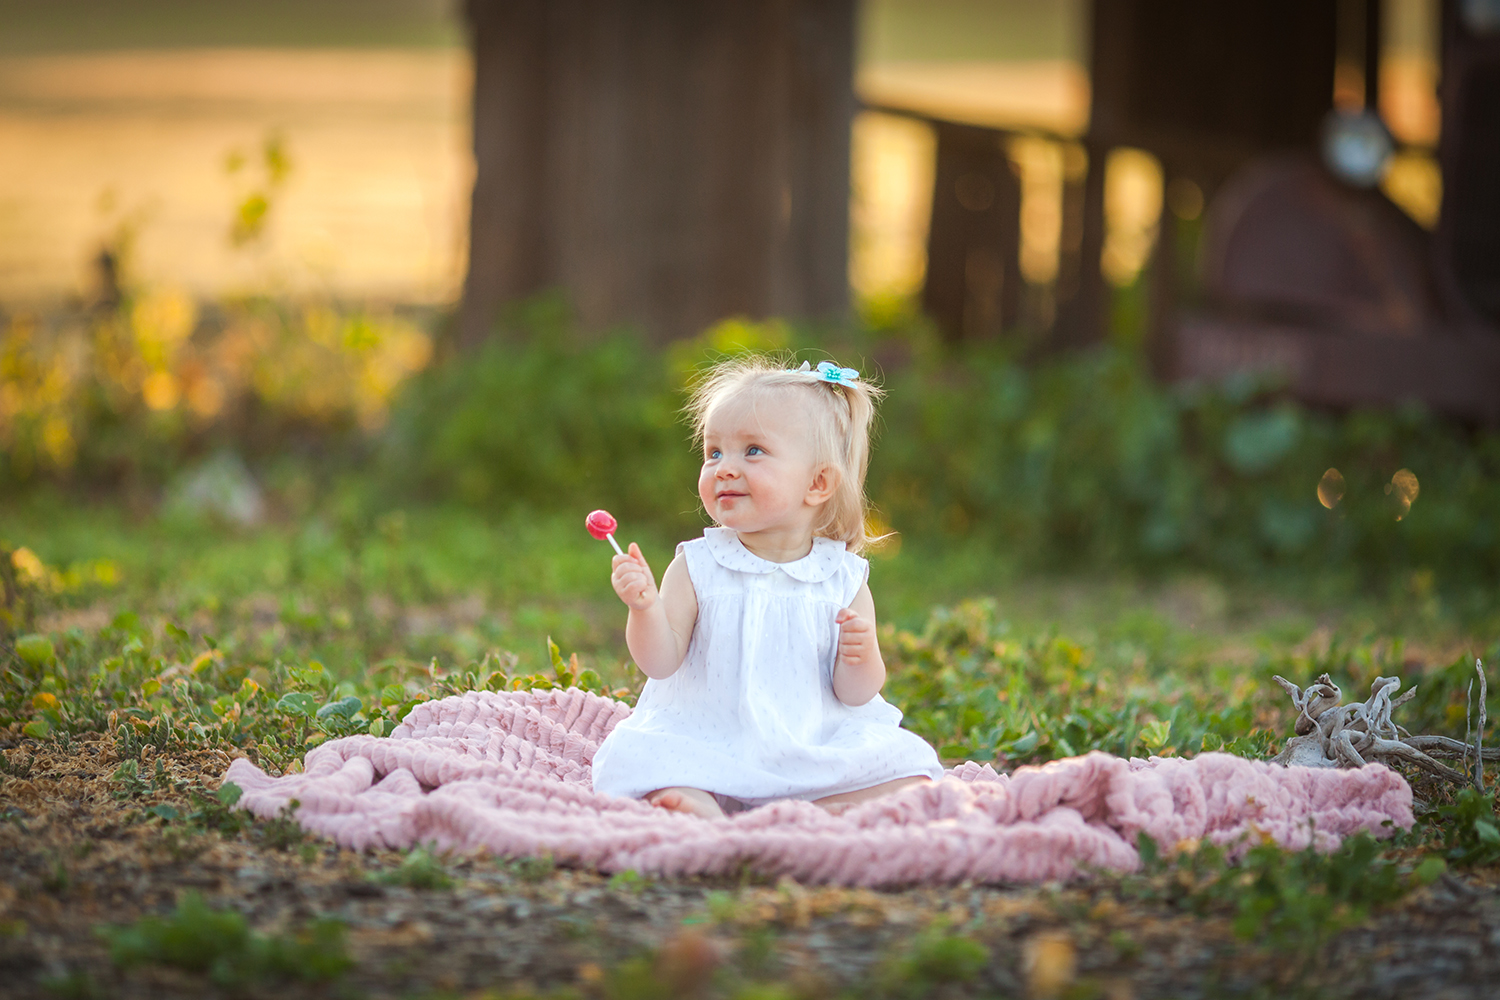 Dena_Rooney_baby photographer_0022.jpg